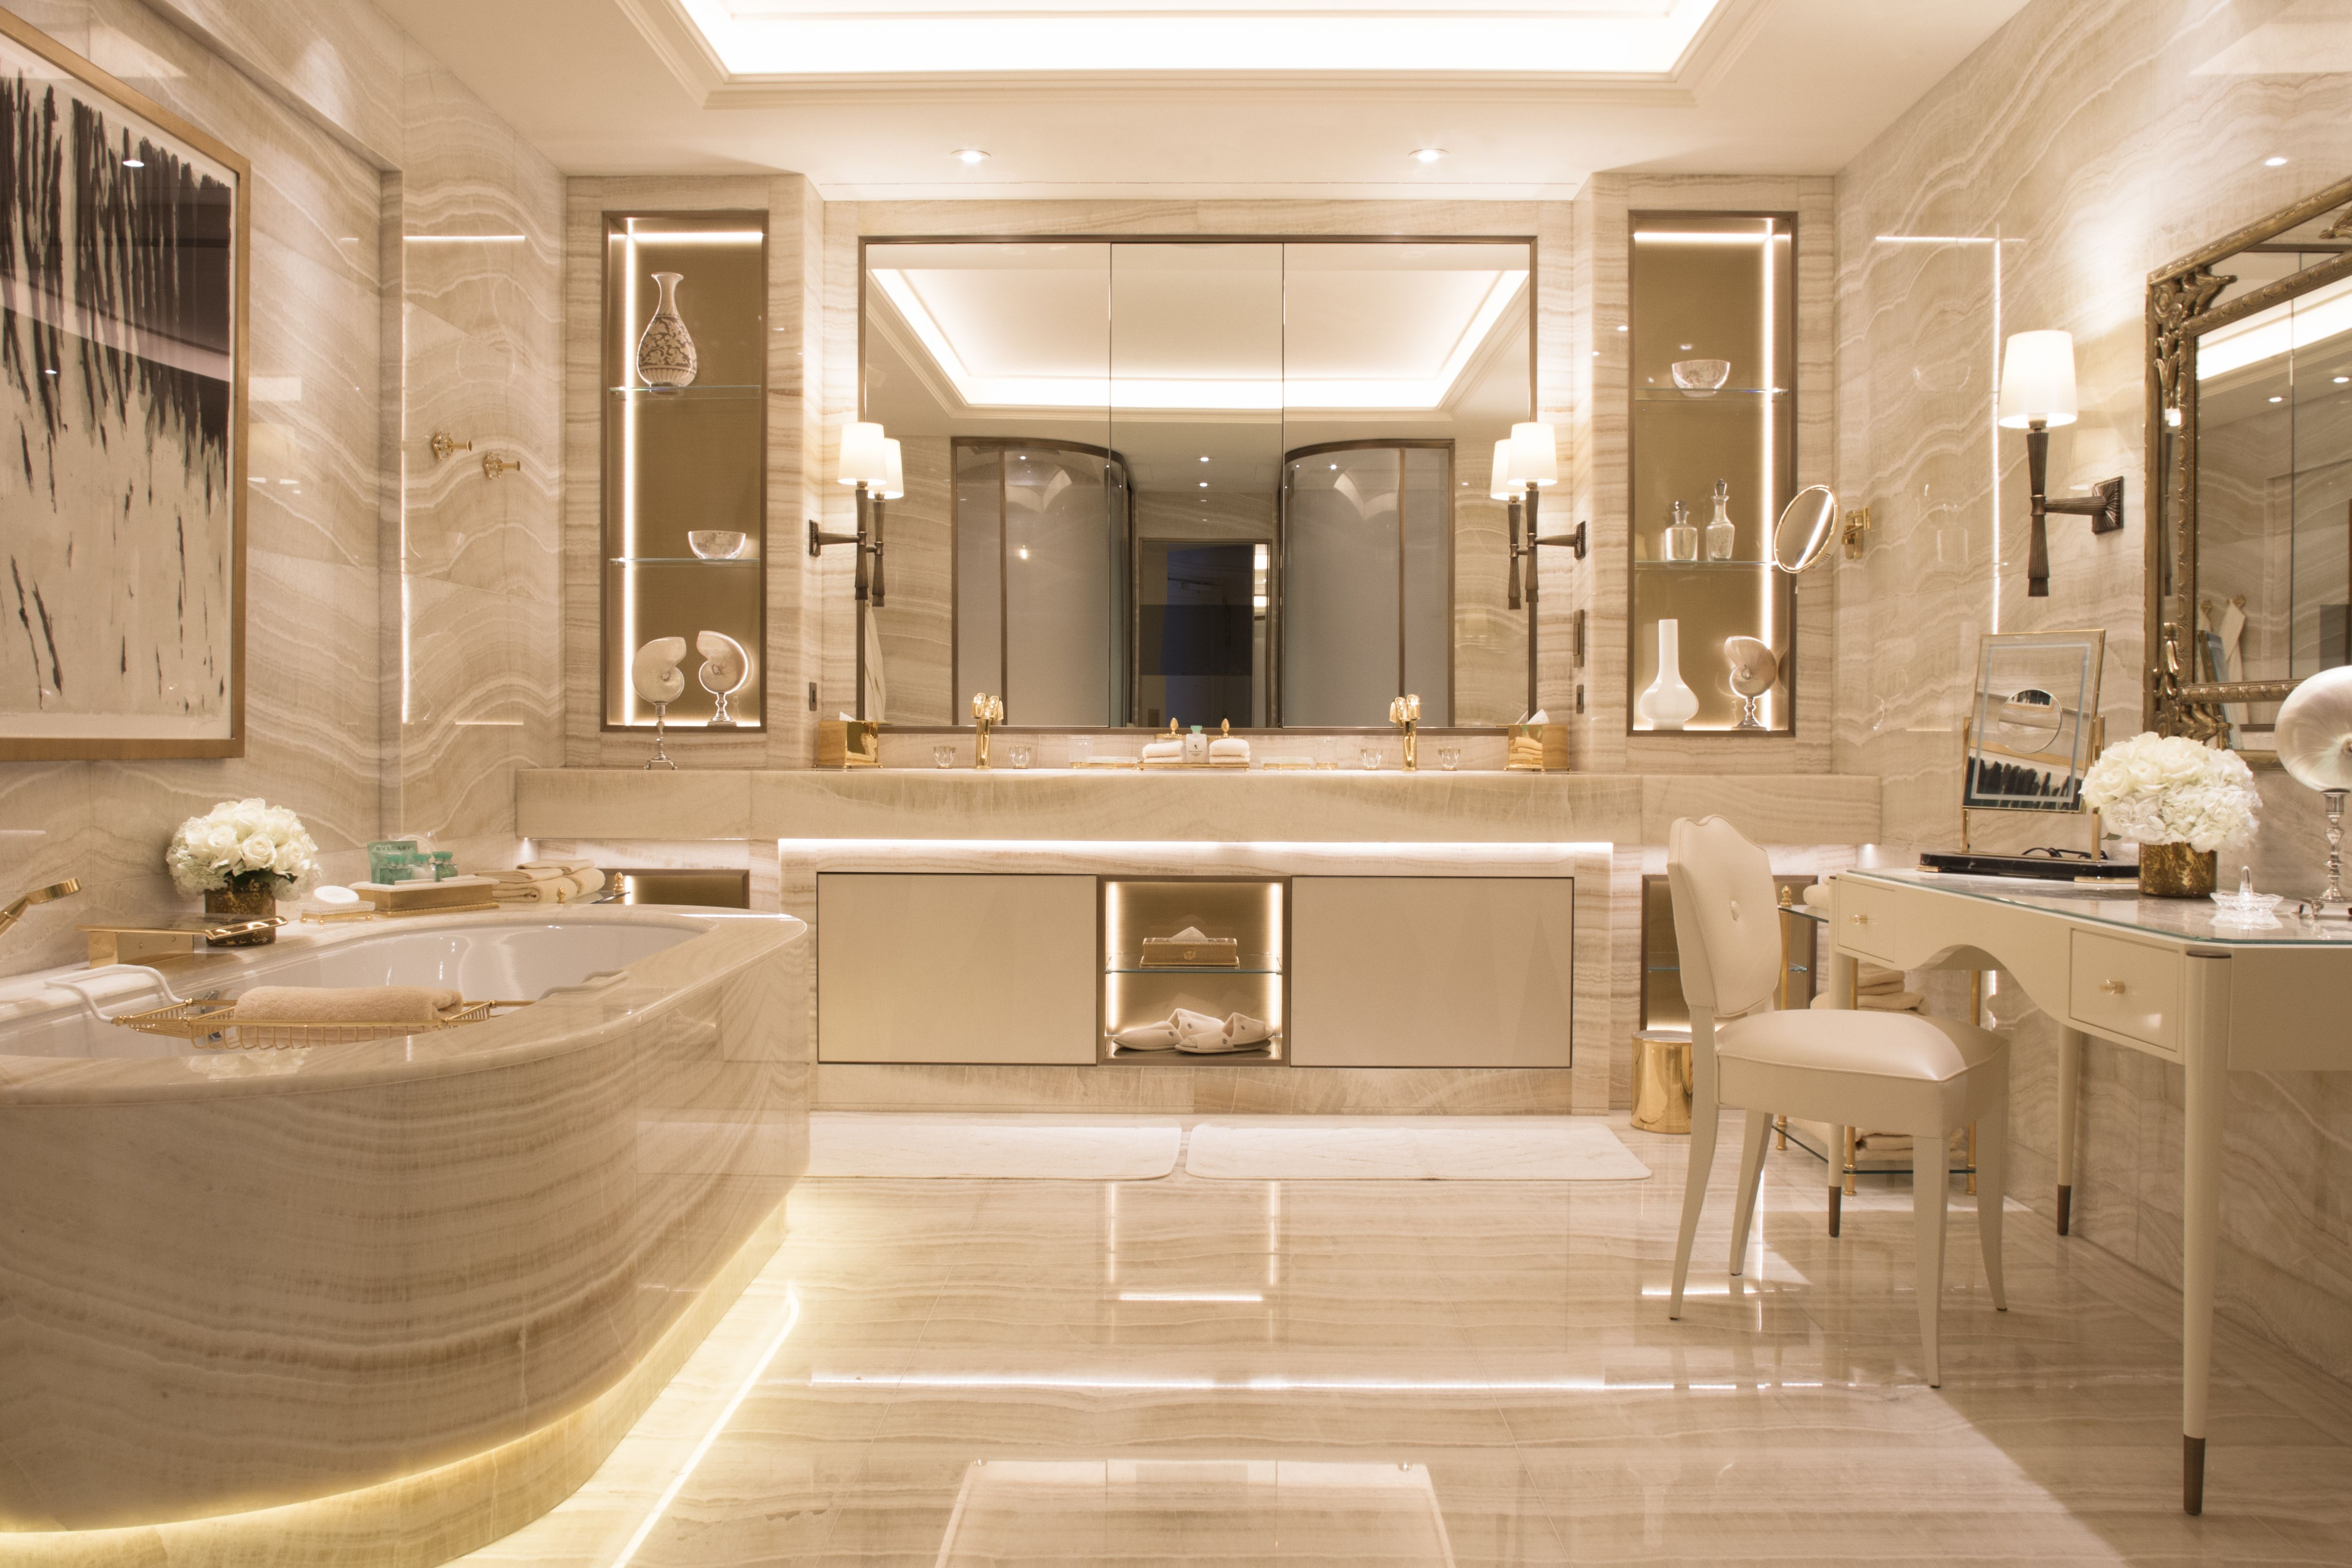 Awesome 25 Luxurious Marble Bathroom Design Ideas Marble Bathroom Designs Paris Bathroom Decor Bathroom Design Luxury